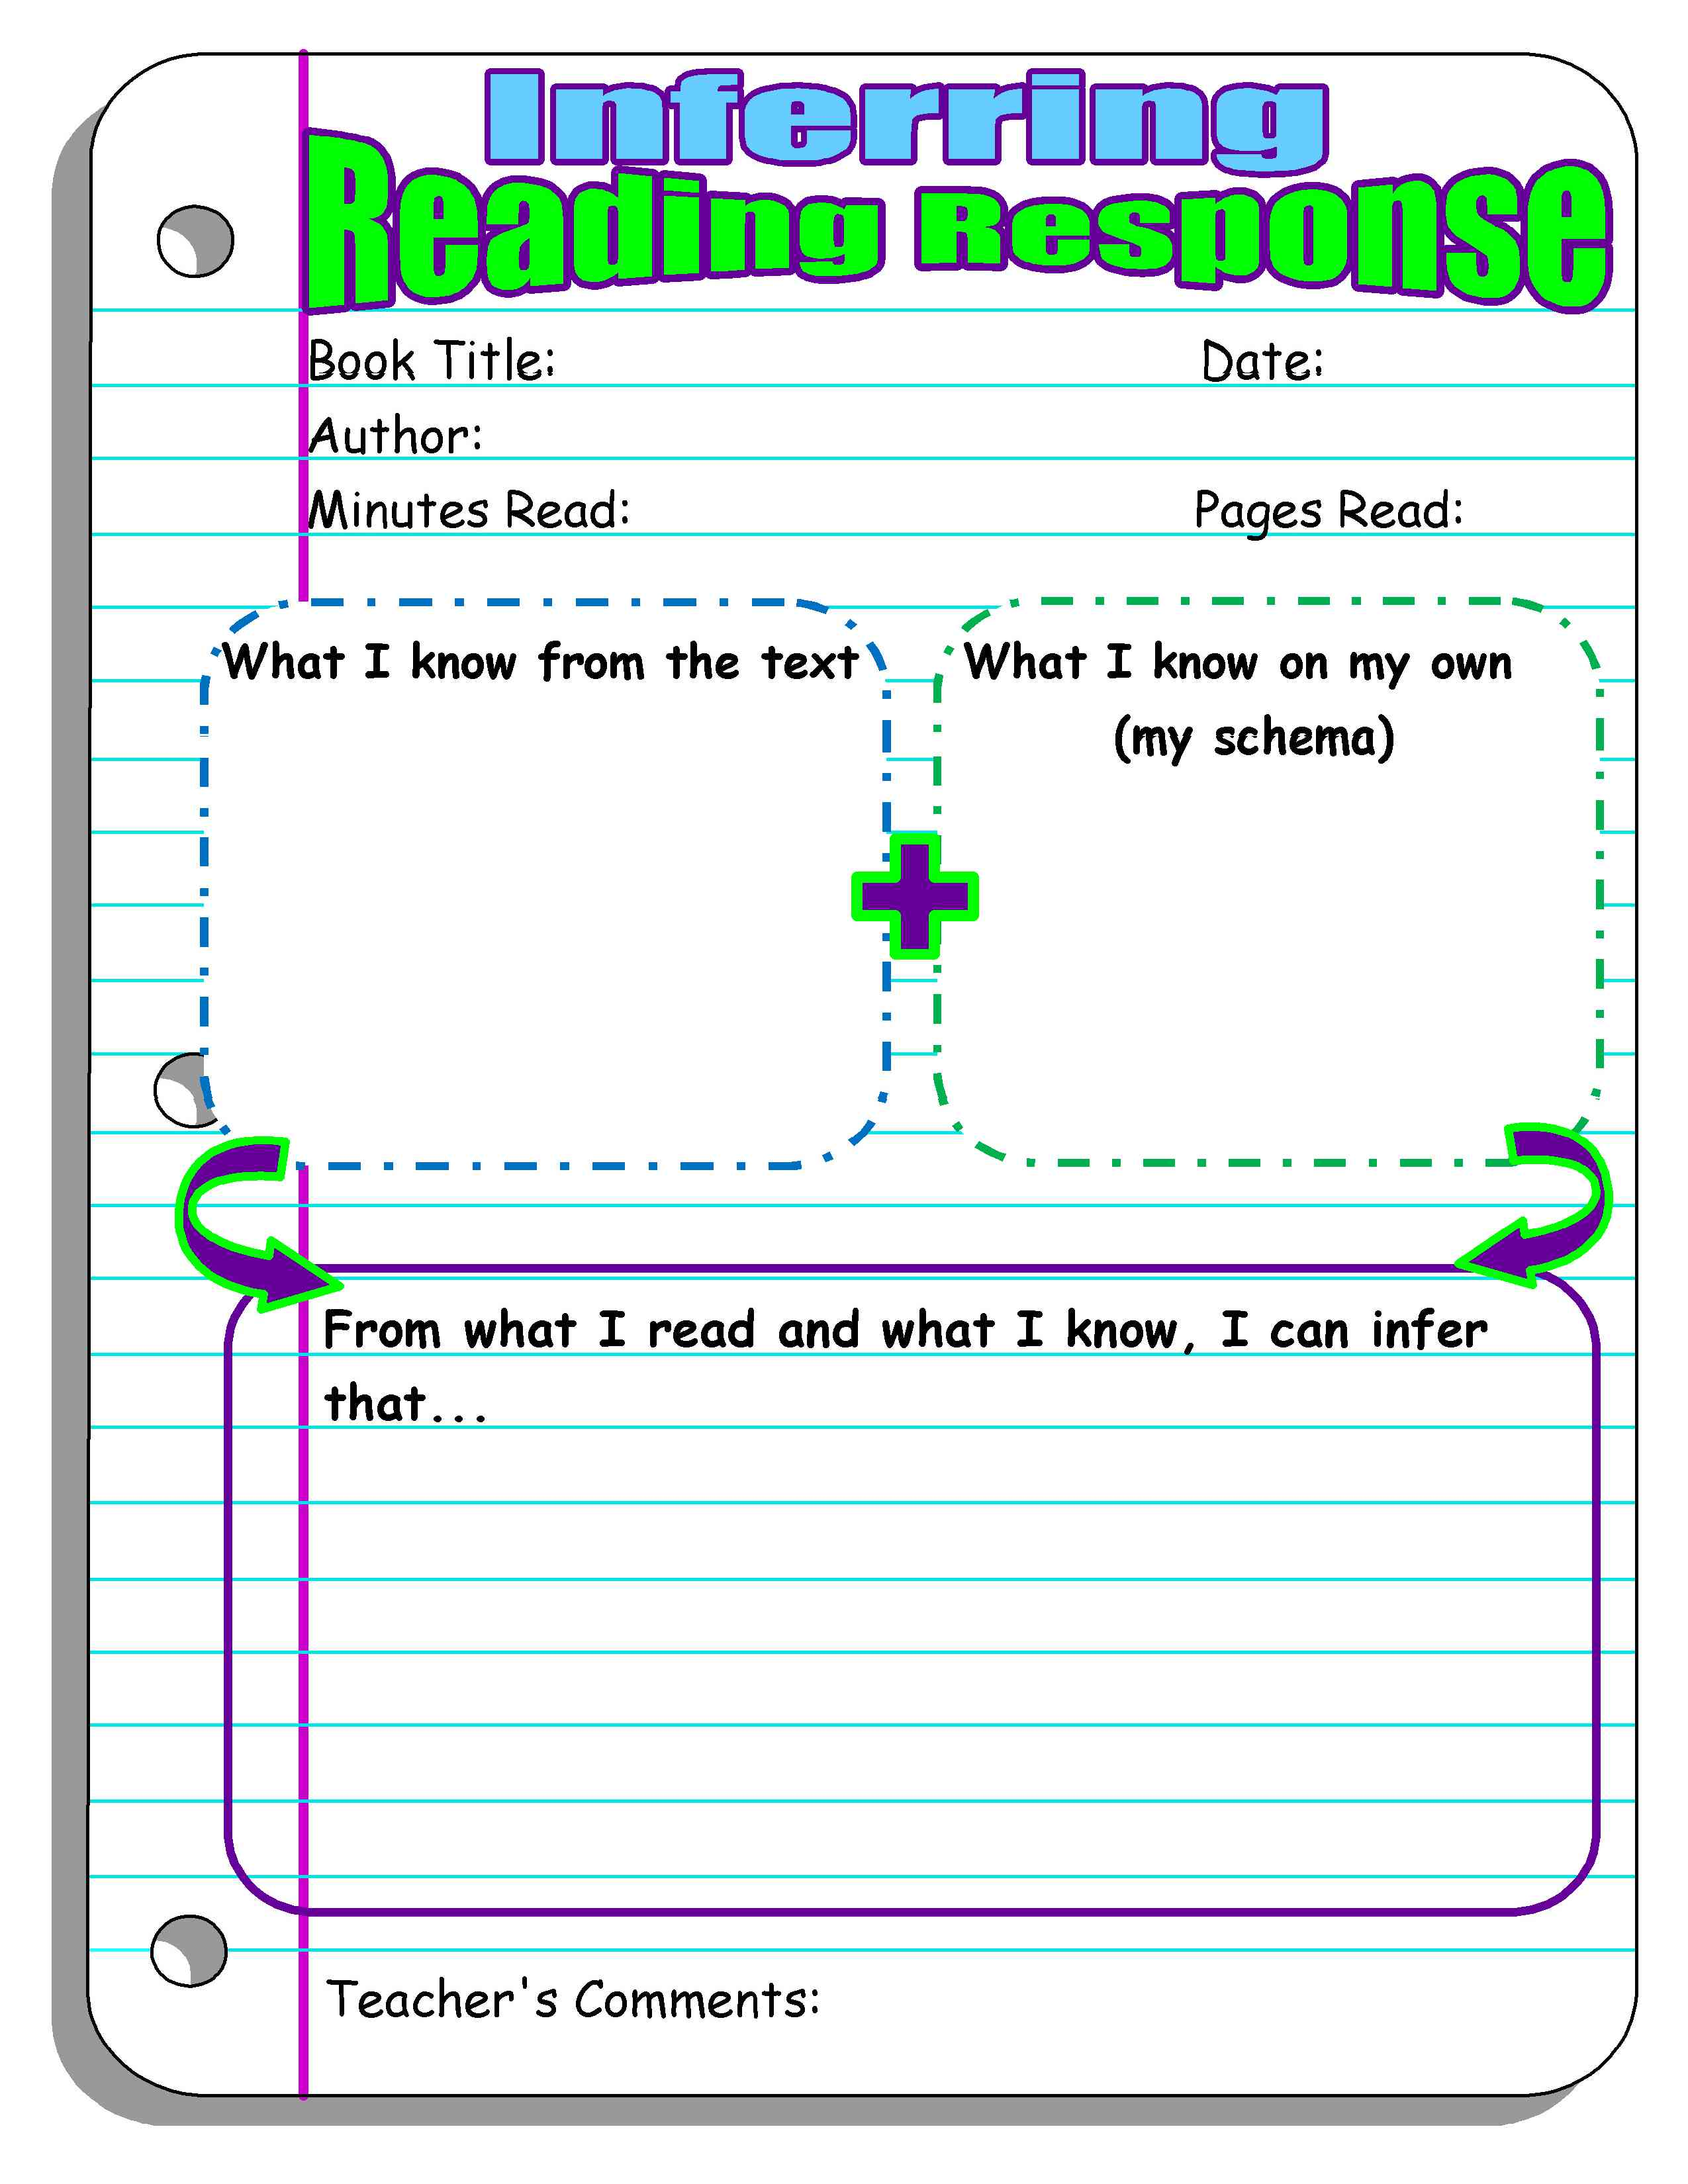 Reading Response Forms and Graphic Organizers | Scholastic